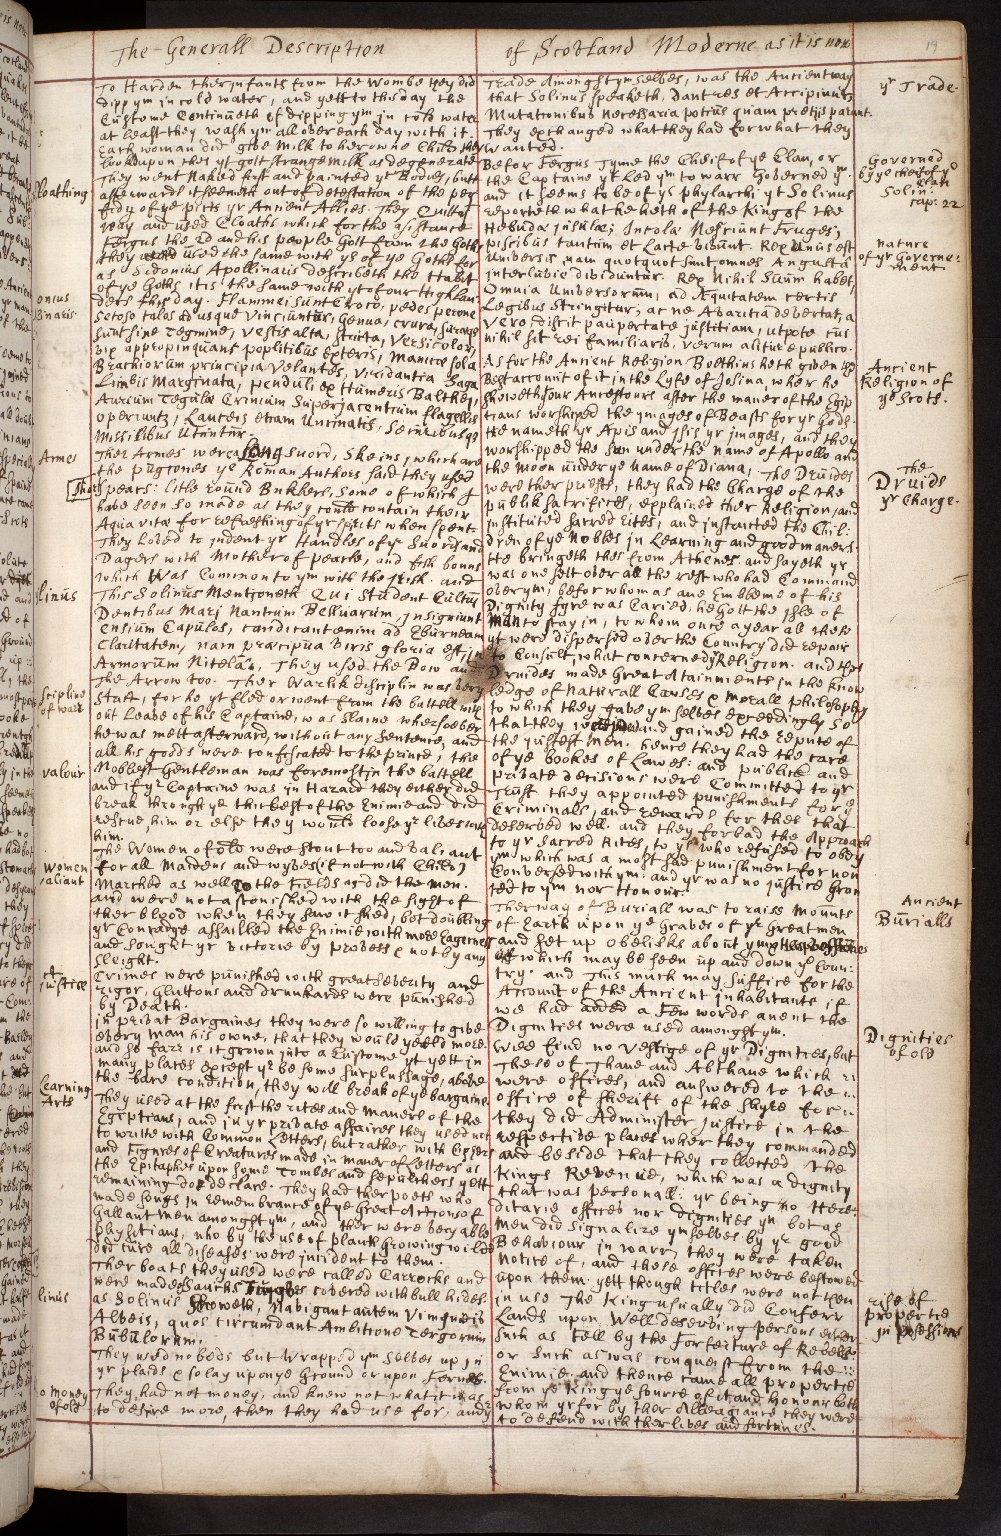 Atlas Scoticus, or a Description of Scotland Ancient and Modern. [024 of 259]